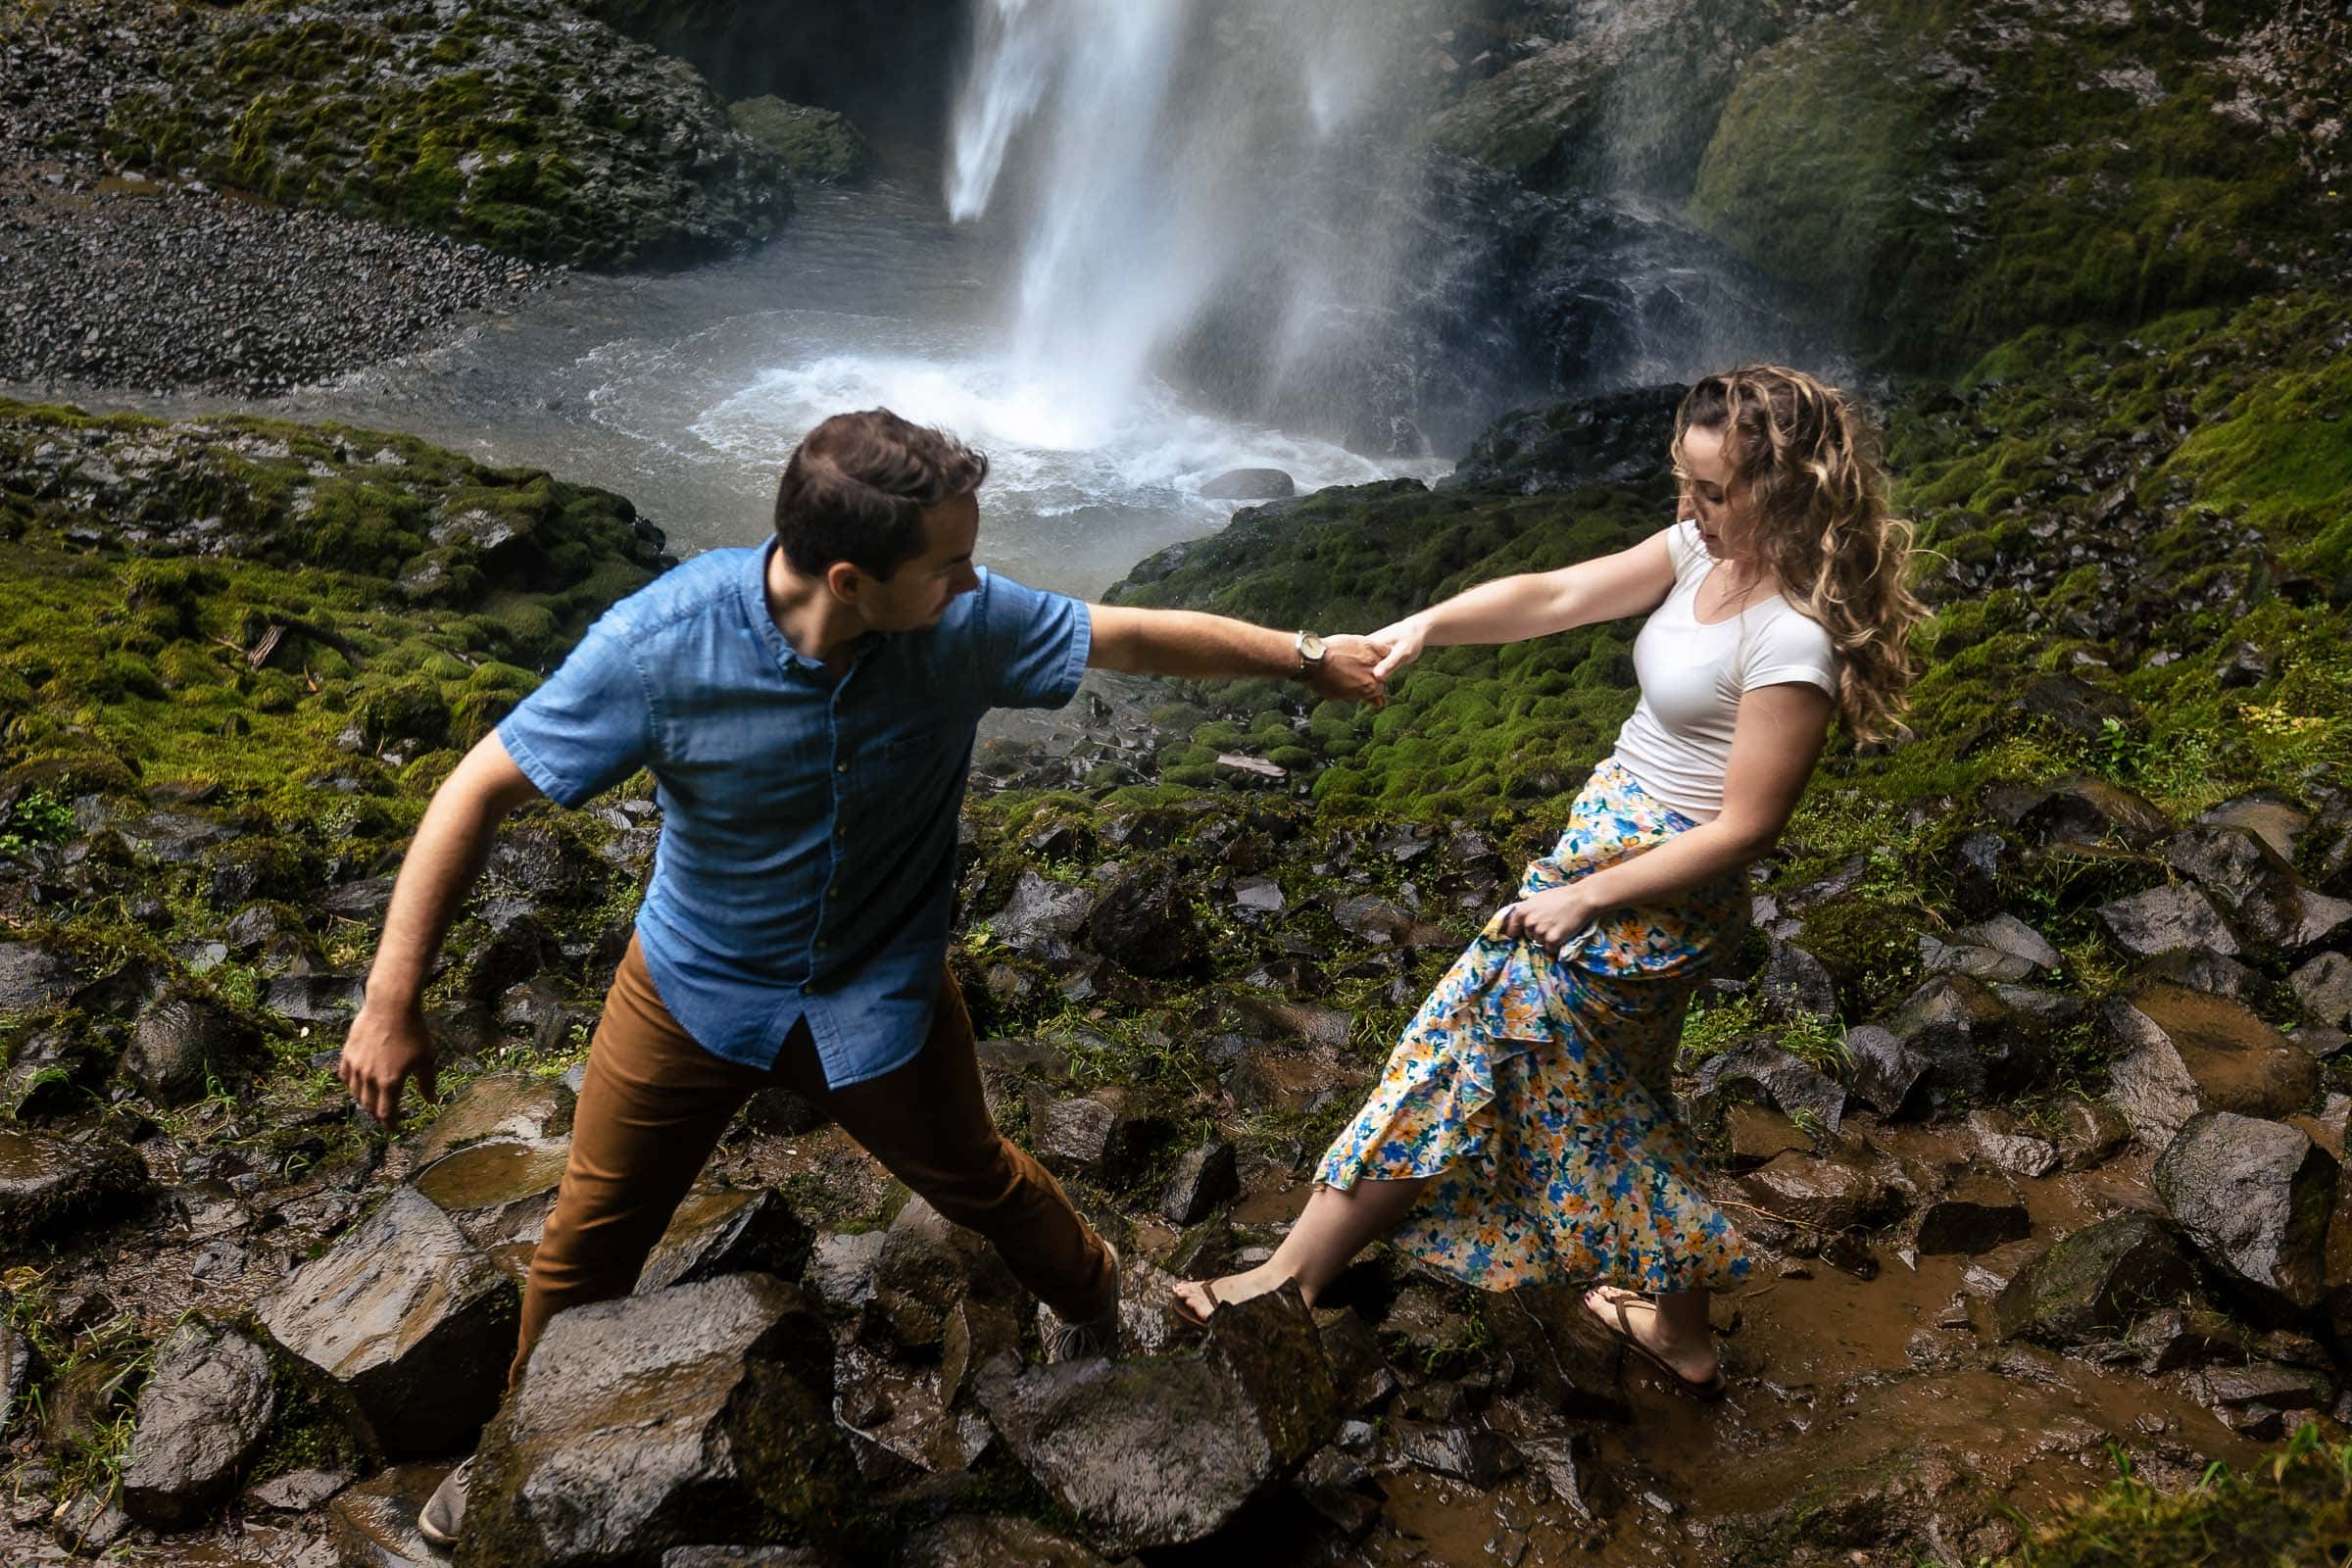 A couple walking hand and hand on rocks under Latourell Falls moments after their real proposal moment. Best Engagement Photography Locations in Portland. Latourell Falls Engagement Photos by Jos and Tree, portland wedding photographers.